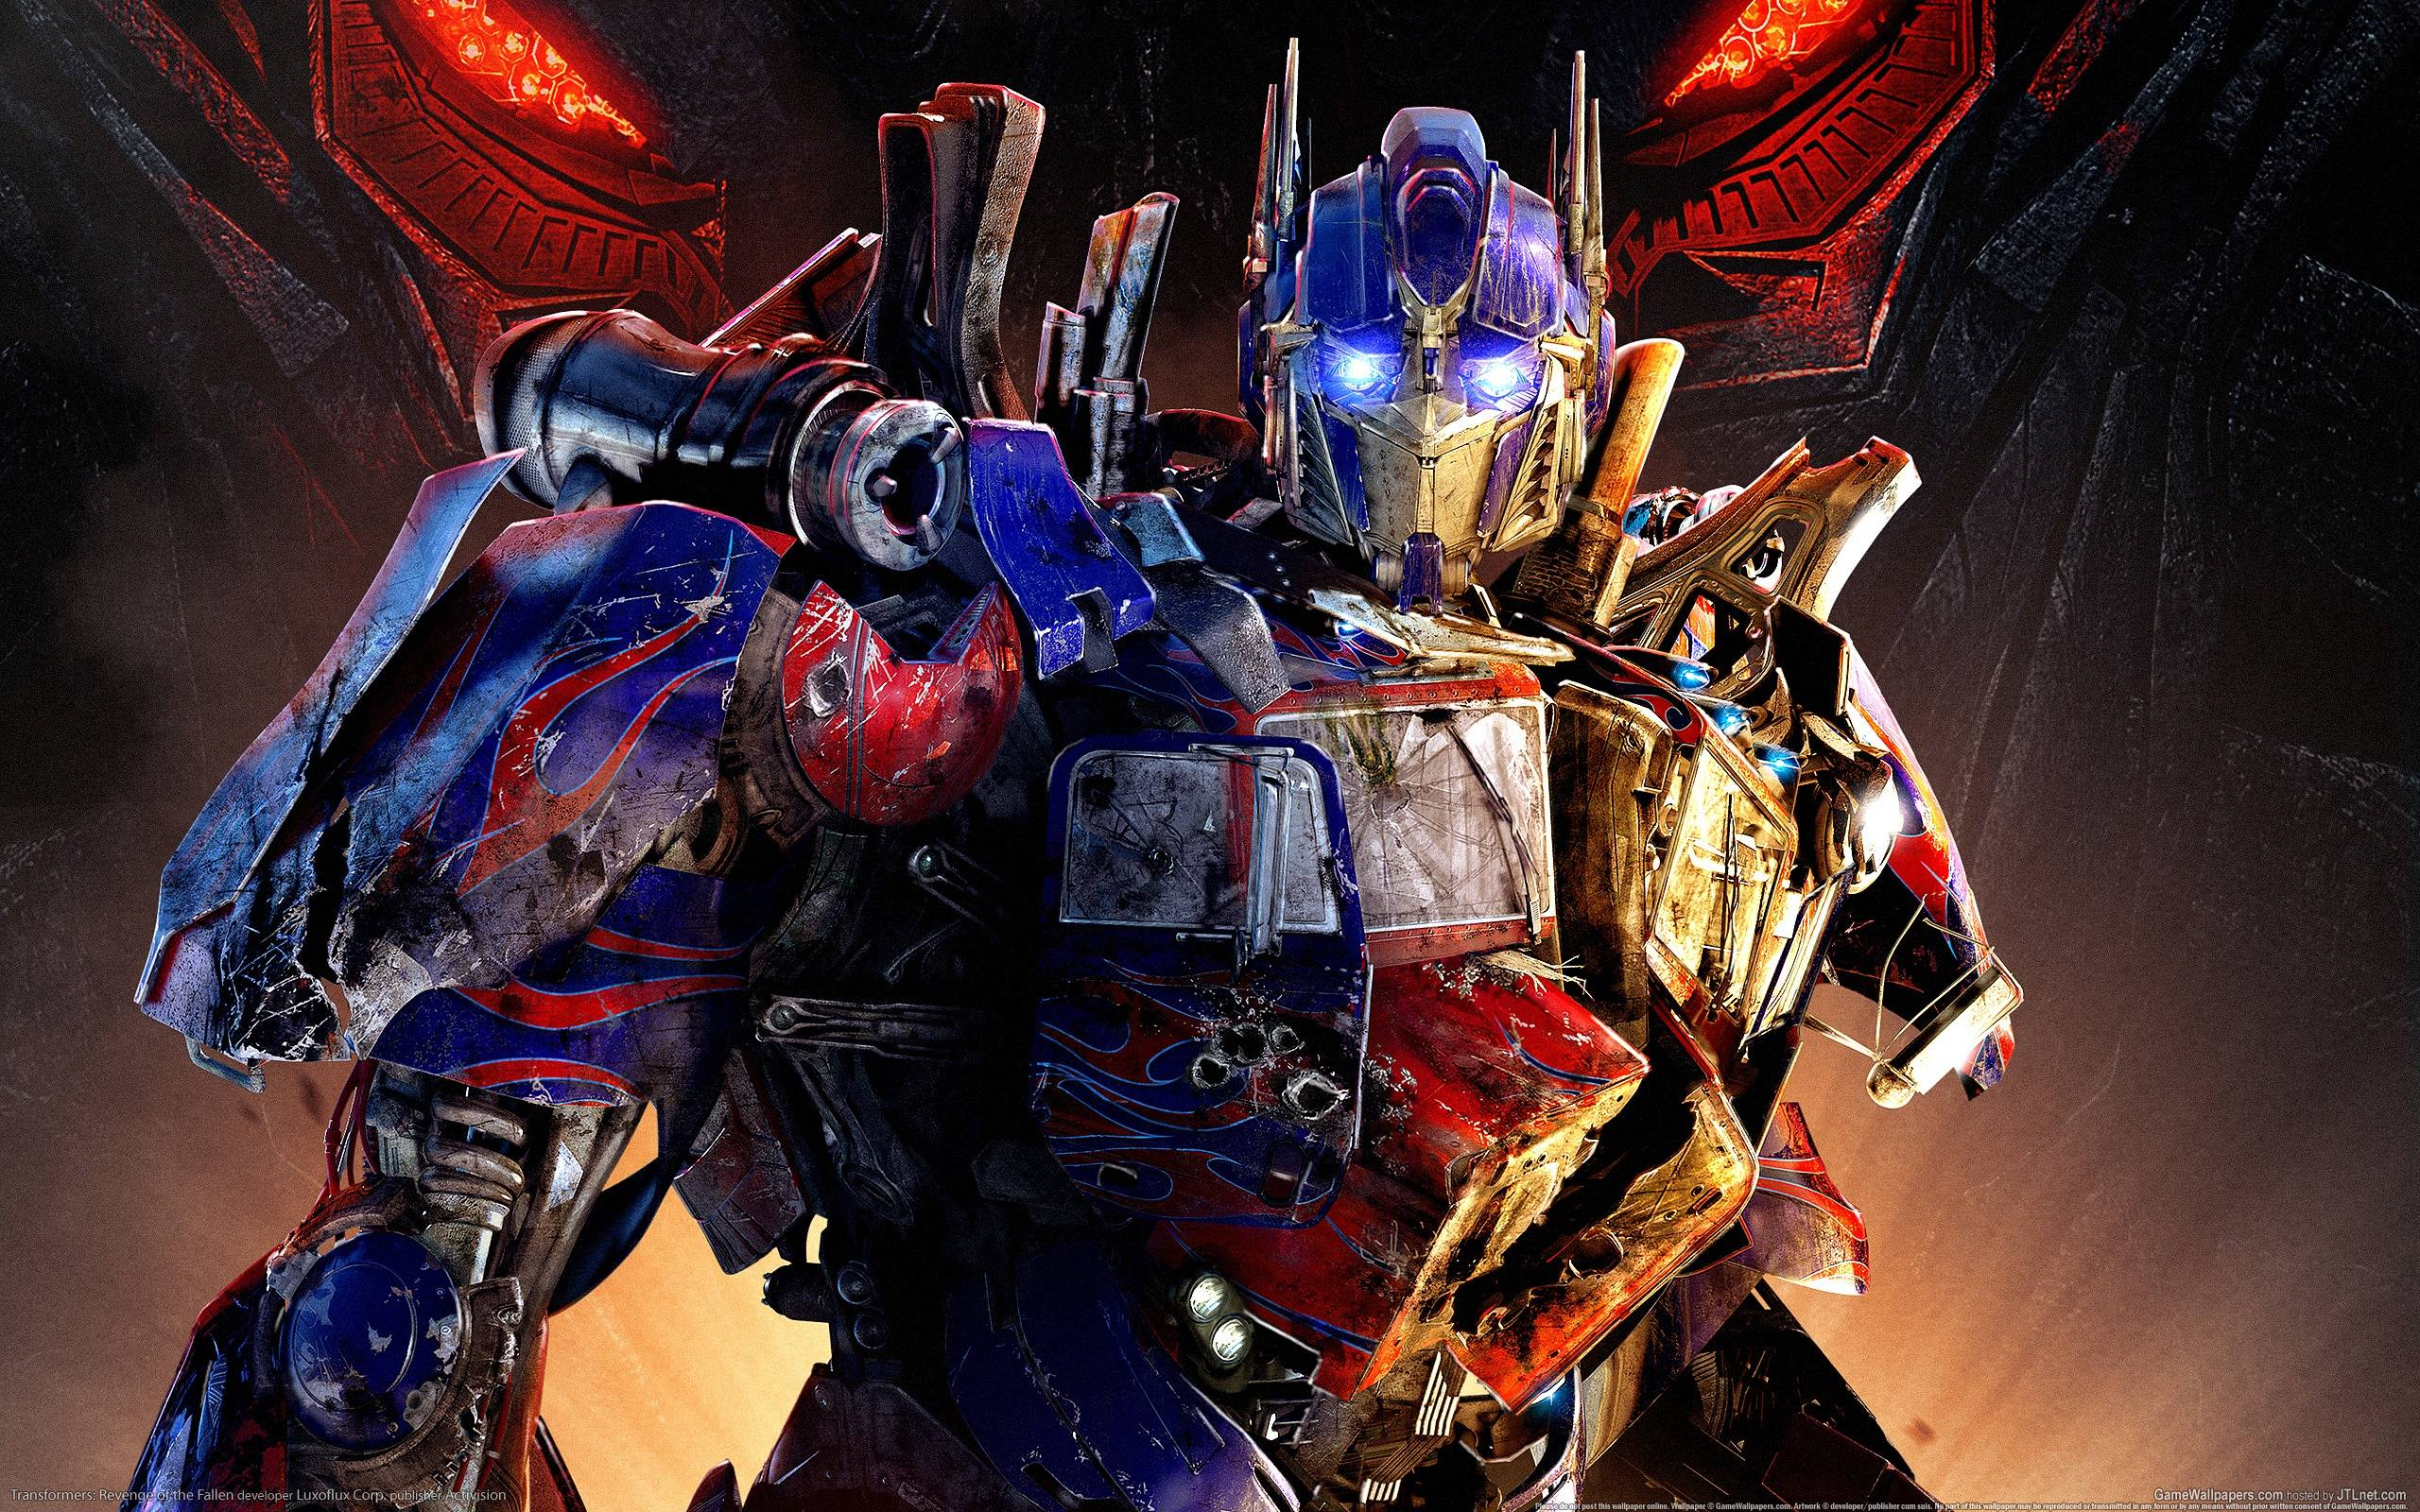 Transformers desktop wallpapers wallpaper cave - Transformers desktop backgrounds ...